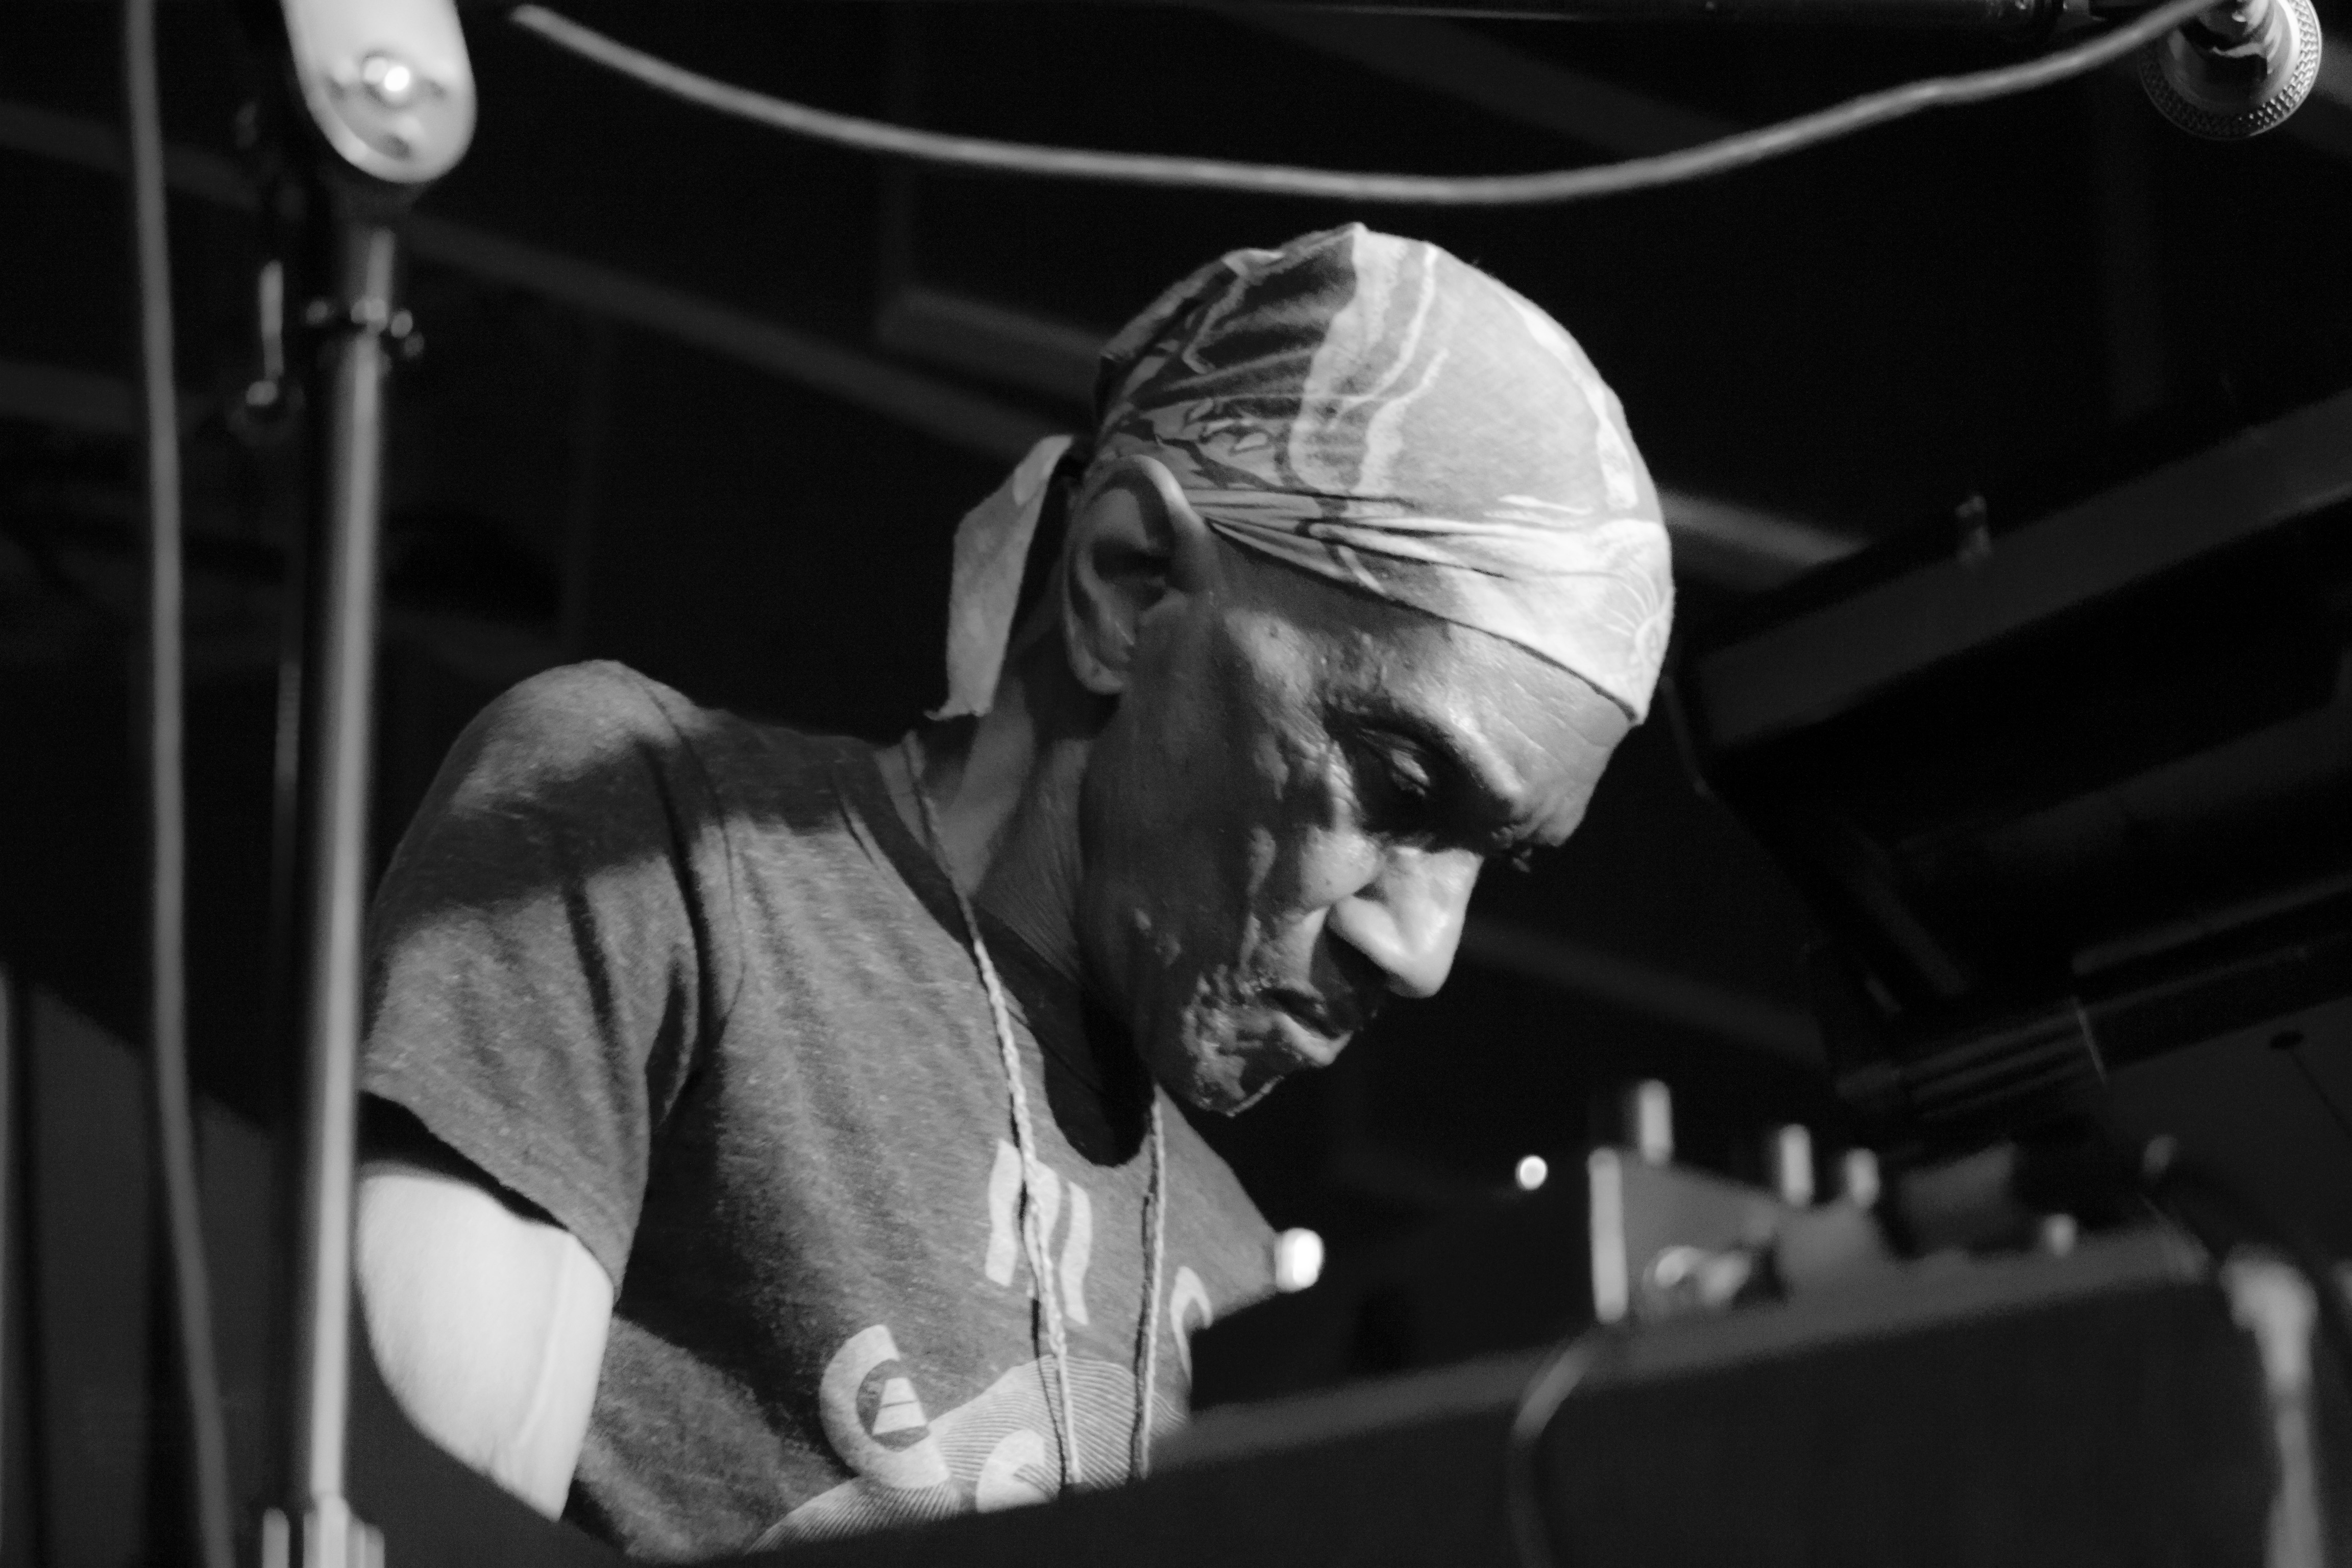 PHOTOS Bernie Worrell at Highland Brewing in Asheville